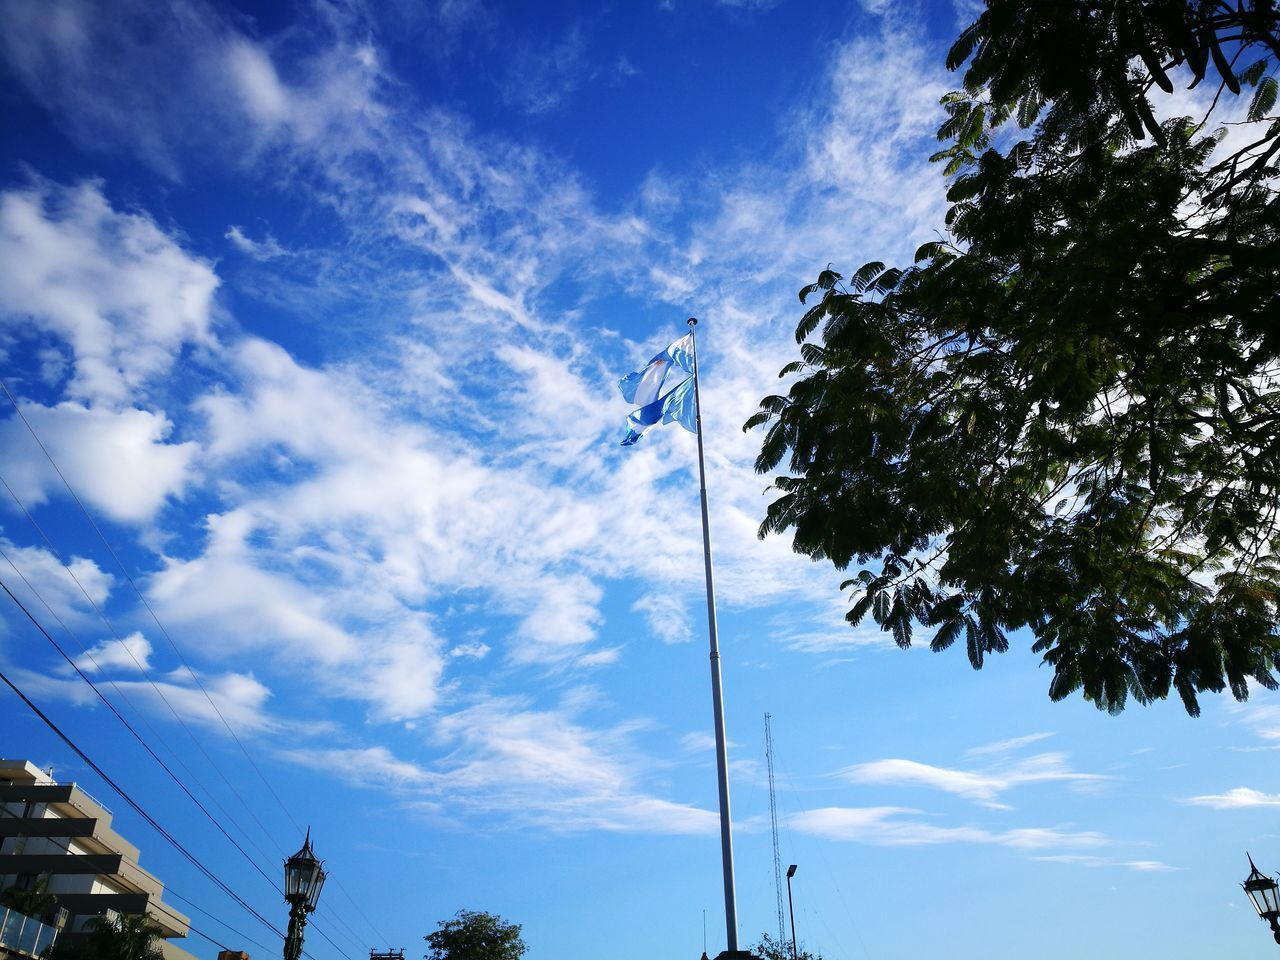 sky, cloud - sky, low angle view, tree, plant, no people, nature, flag, day, blue, lighting equipment, outdoors, growth, patriotism, beauty in nature, pole, tranquility, connection, electricity, tall - high, wispy